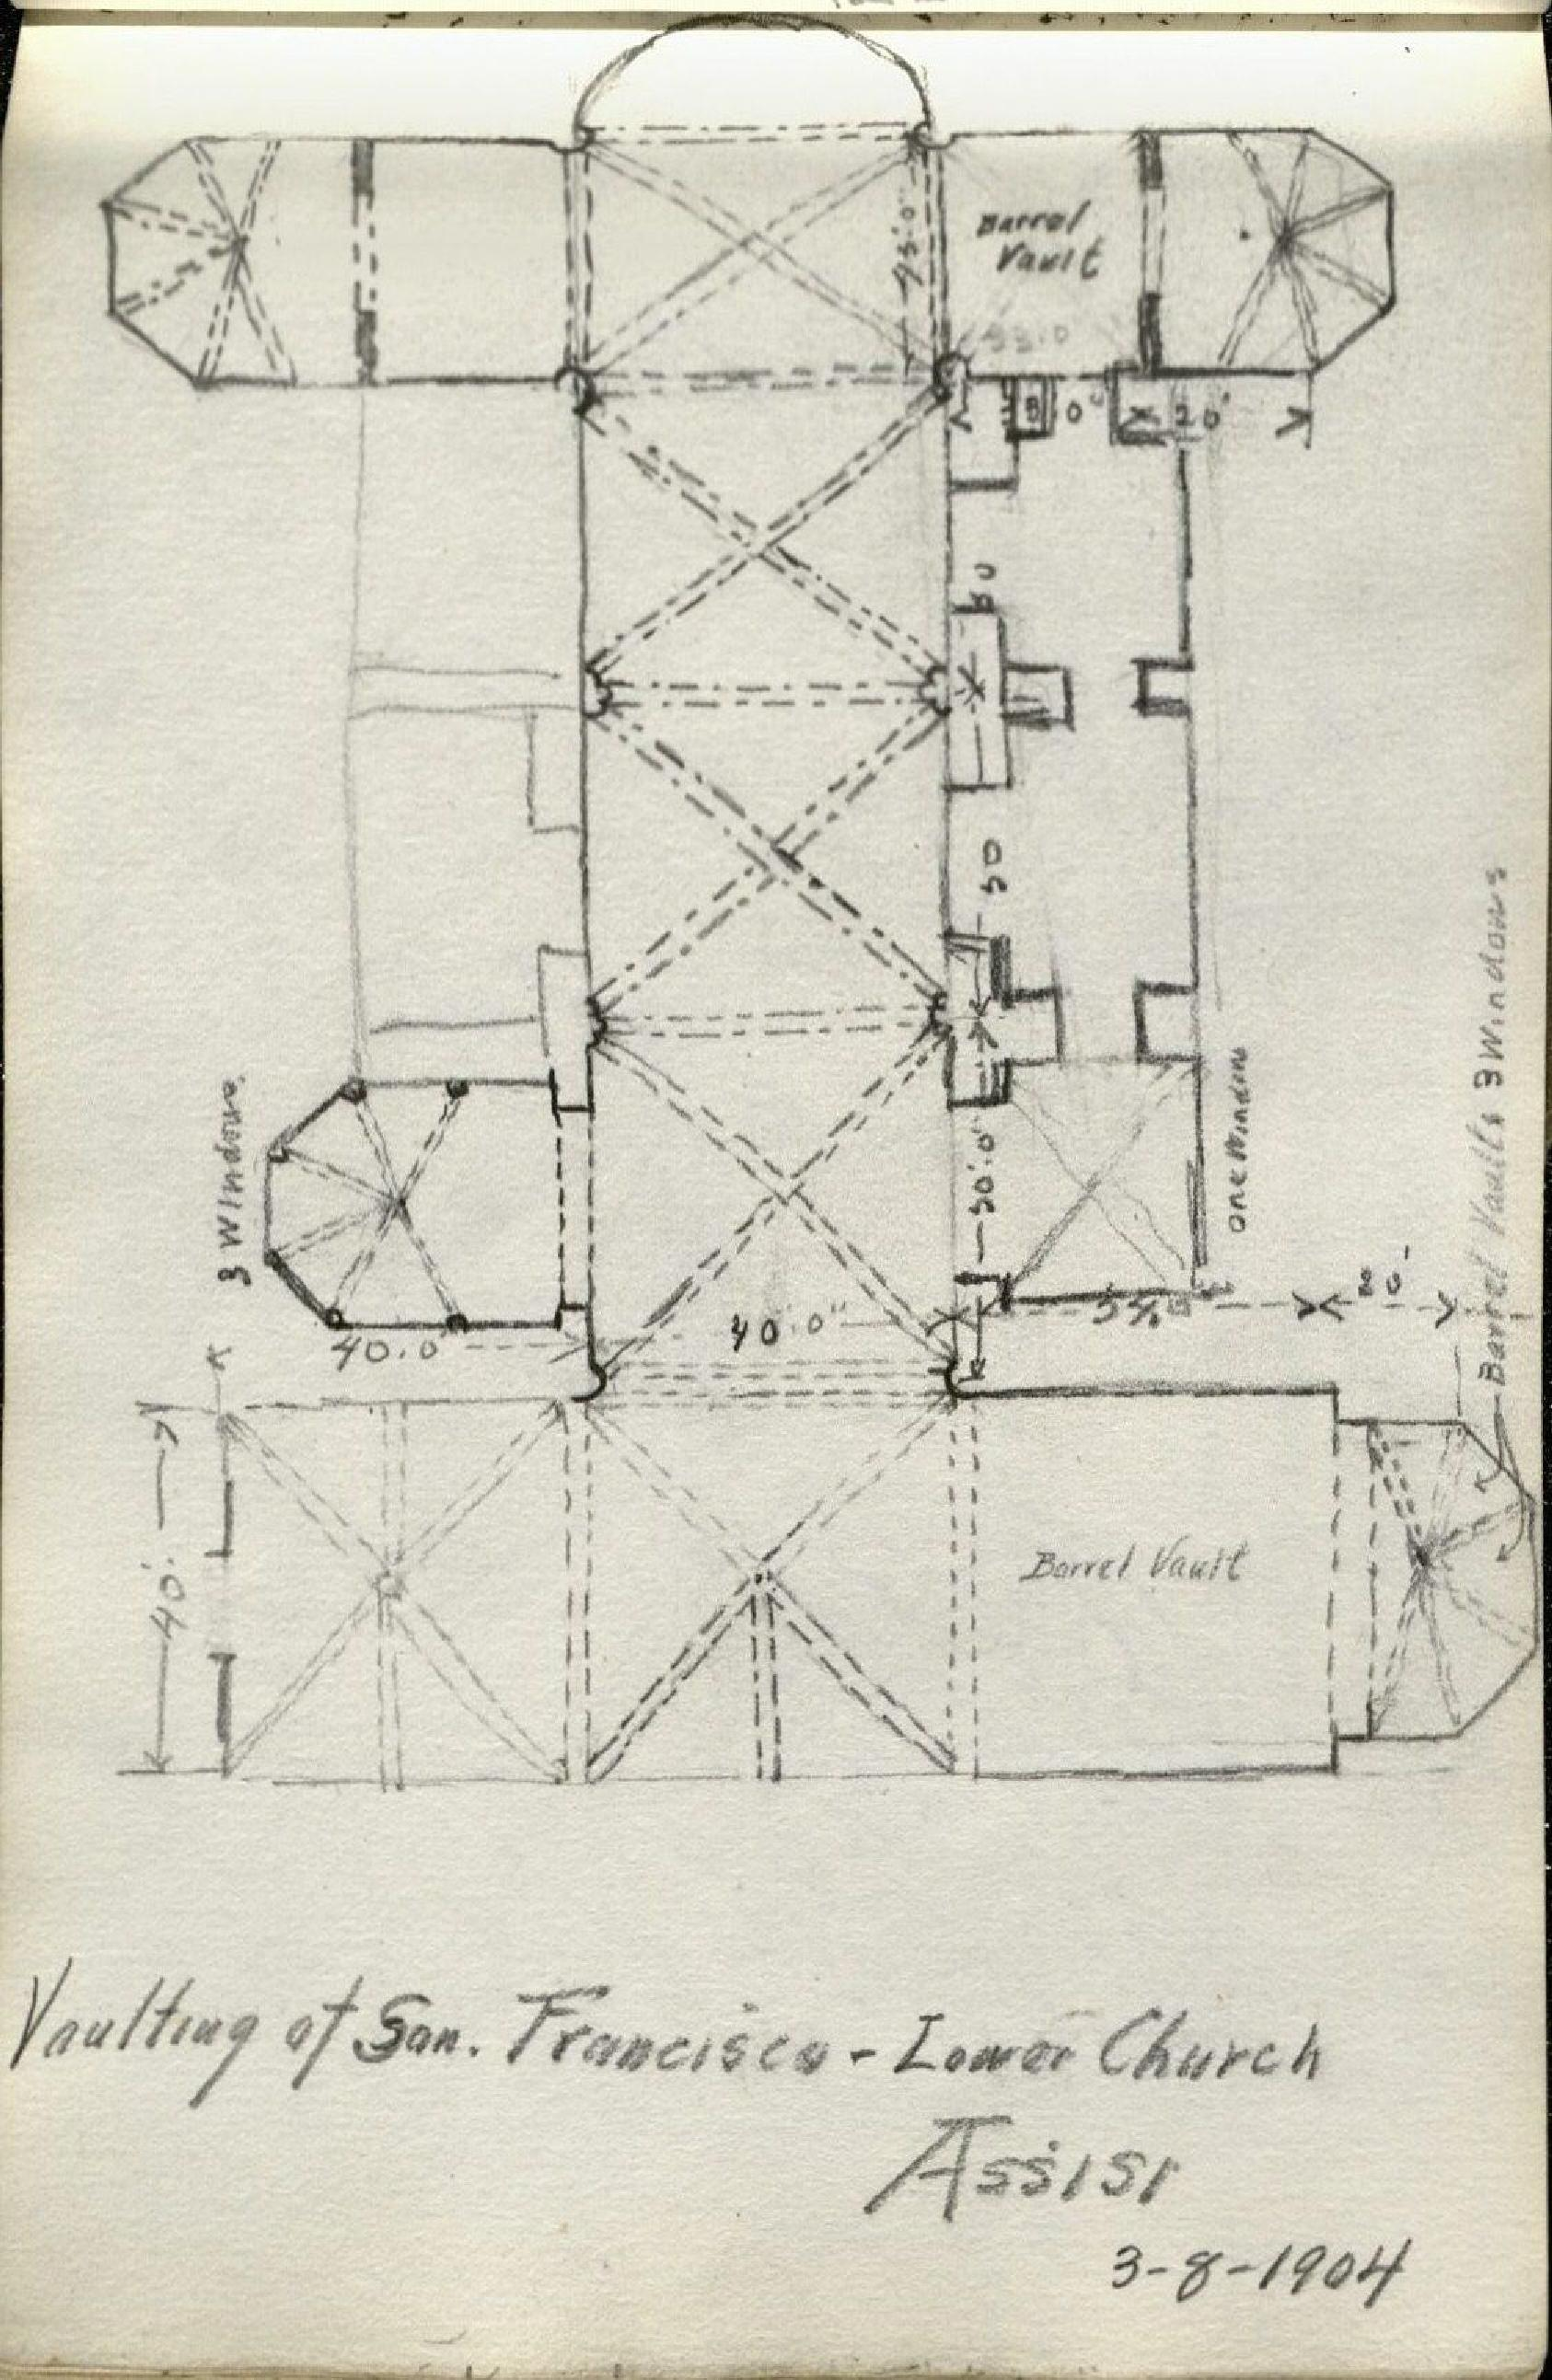 """Alda Wilson European Sketchbook page, pencil illustration of architecture from an aerial view, entitled """"Vaulting of San. Francisco - Lower Church Assisi 3-8-1904"""" (RS#21/7/24, folder 5)"""